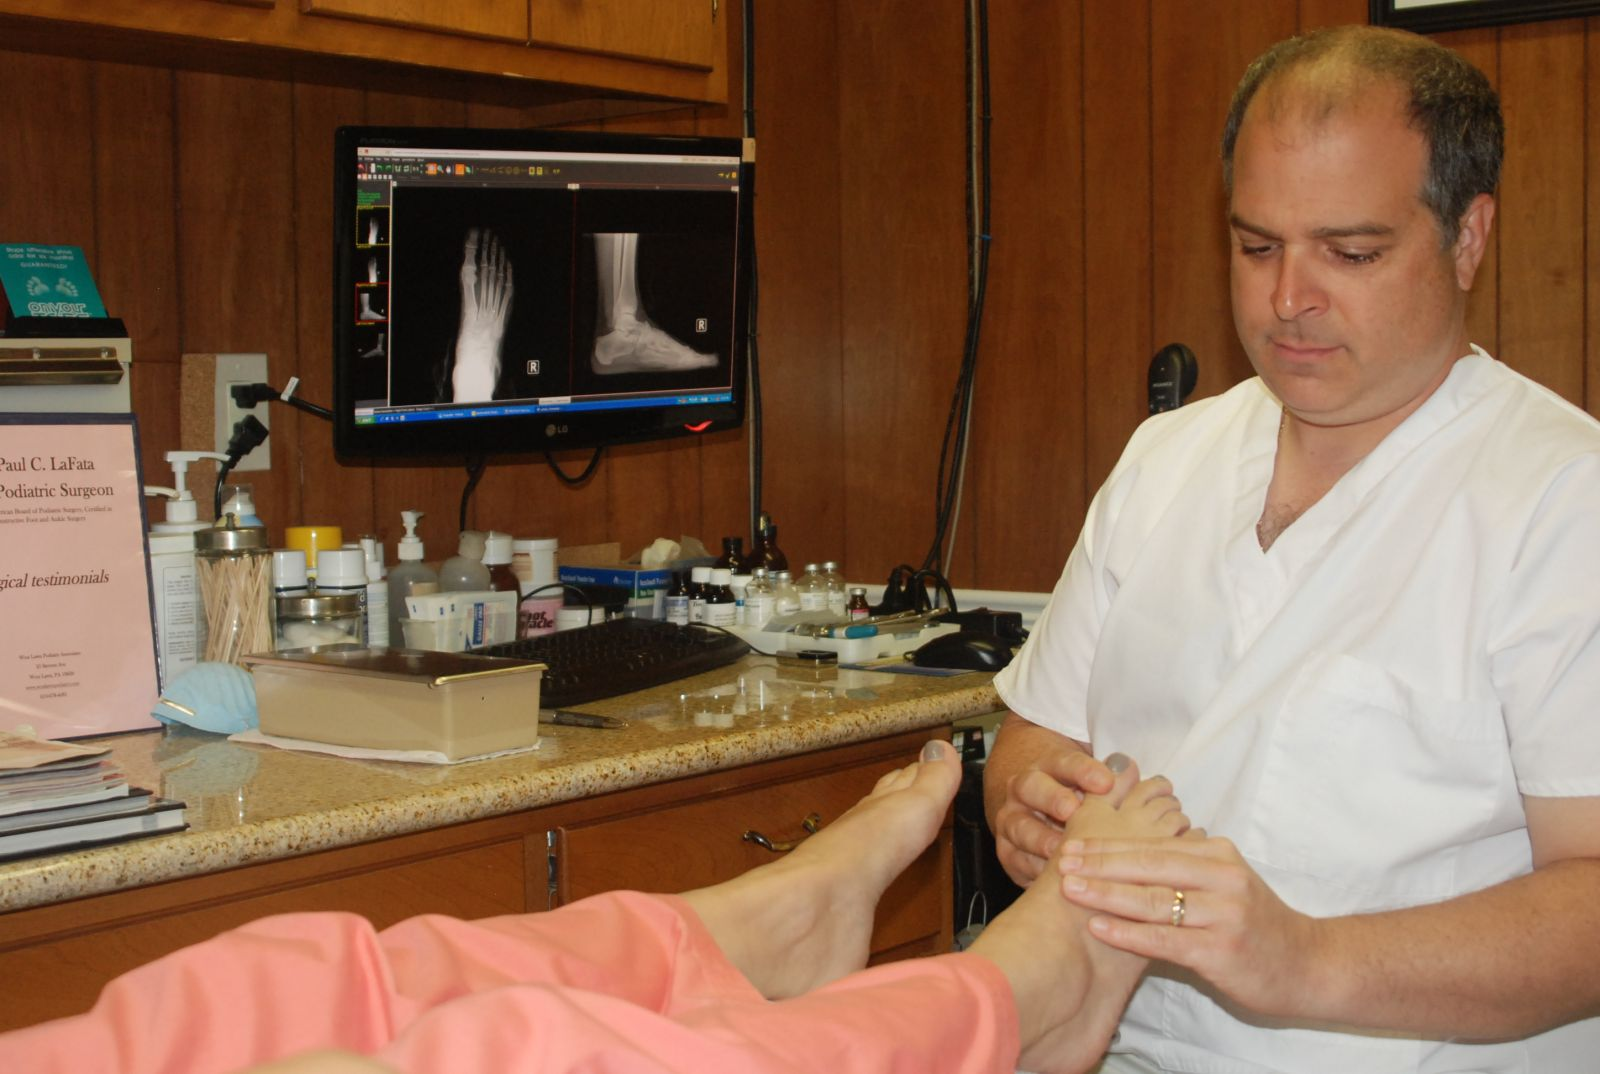 Dr. Paul C. LaFata Performing a Bunion Exam